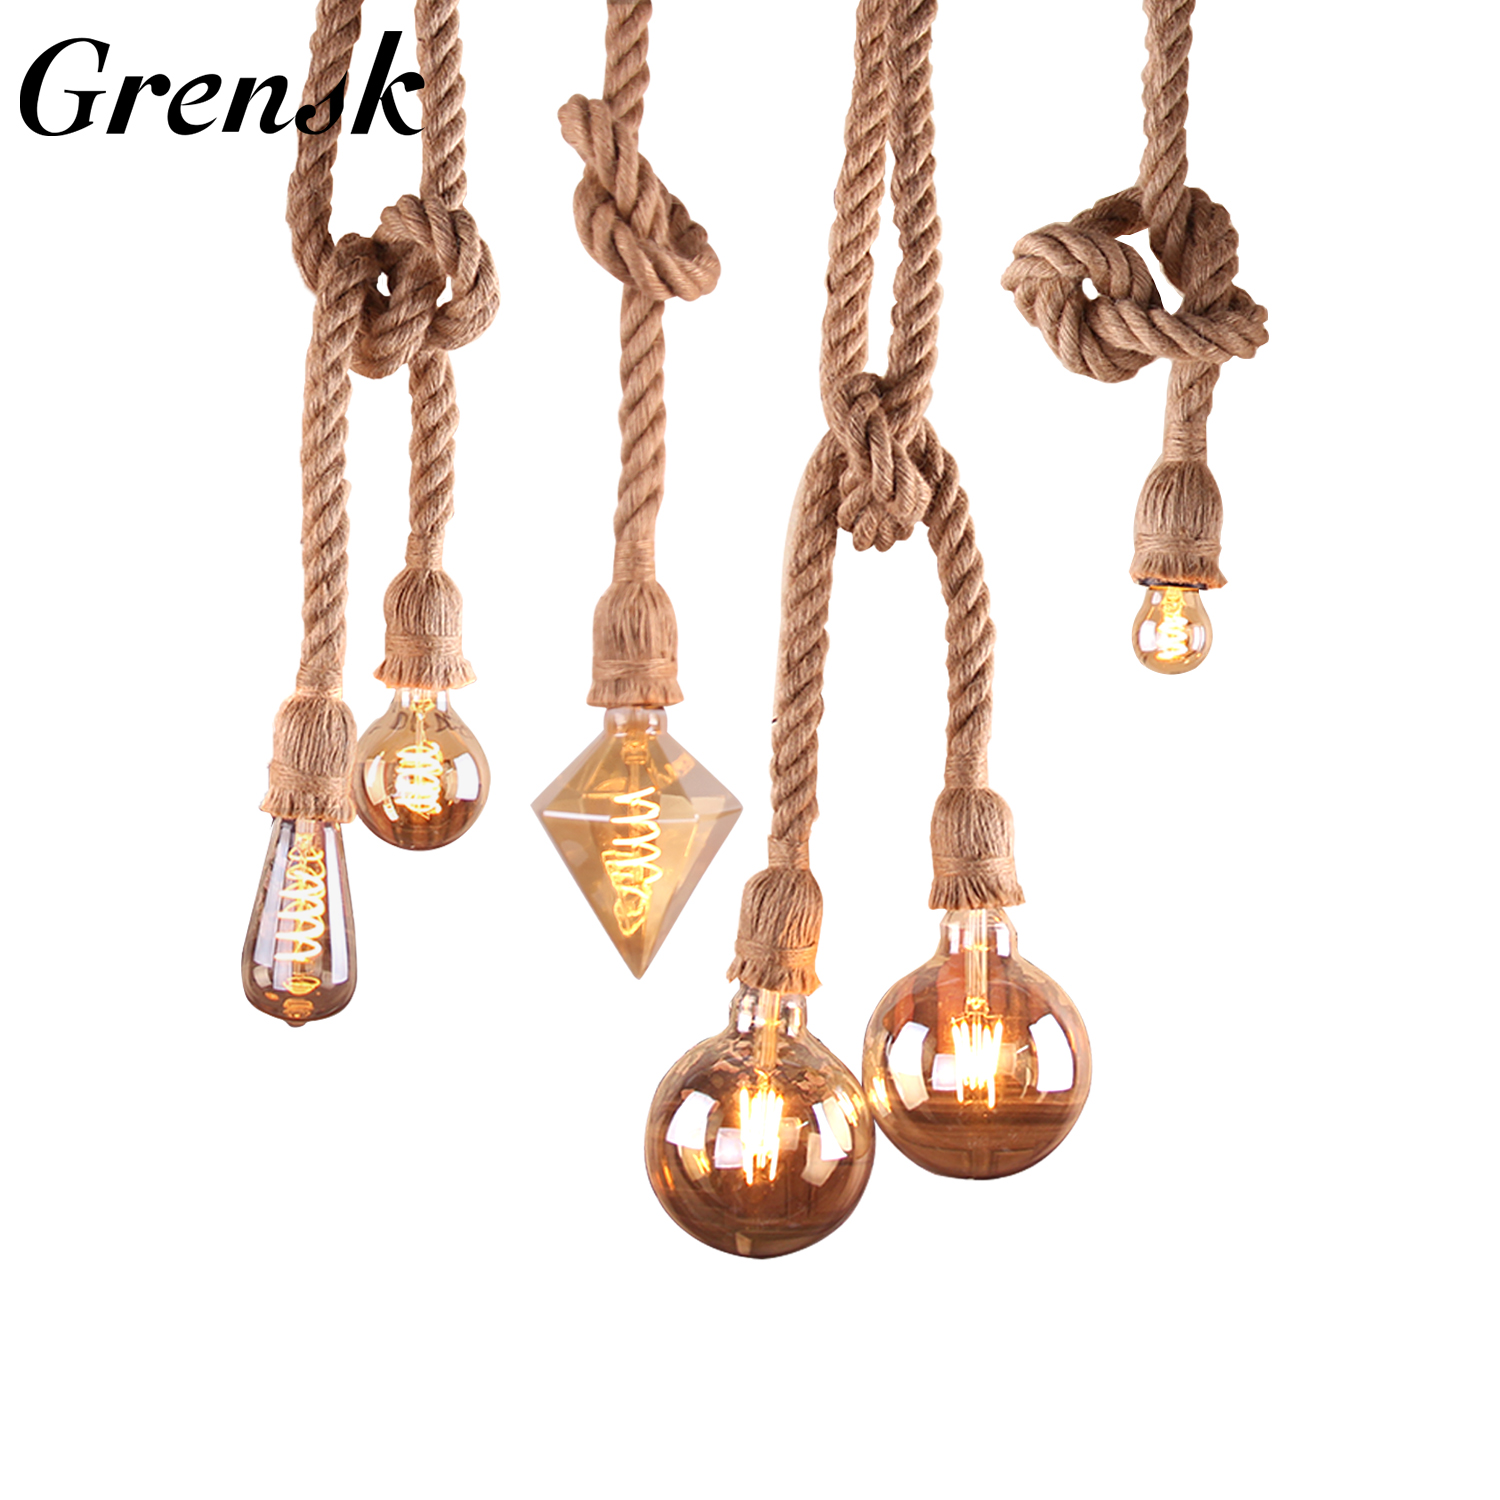 Grensk Kitchen Hanging Lamps E27 Vintage Hemp Rope Double Head Pendant Lamp Living Room Lights Hanging Restaurant Cafe Lighting